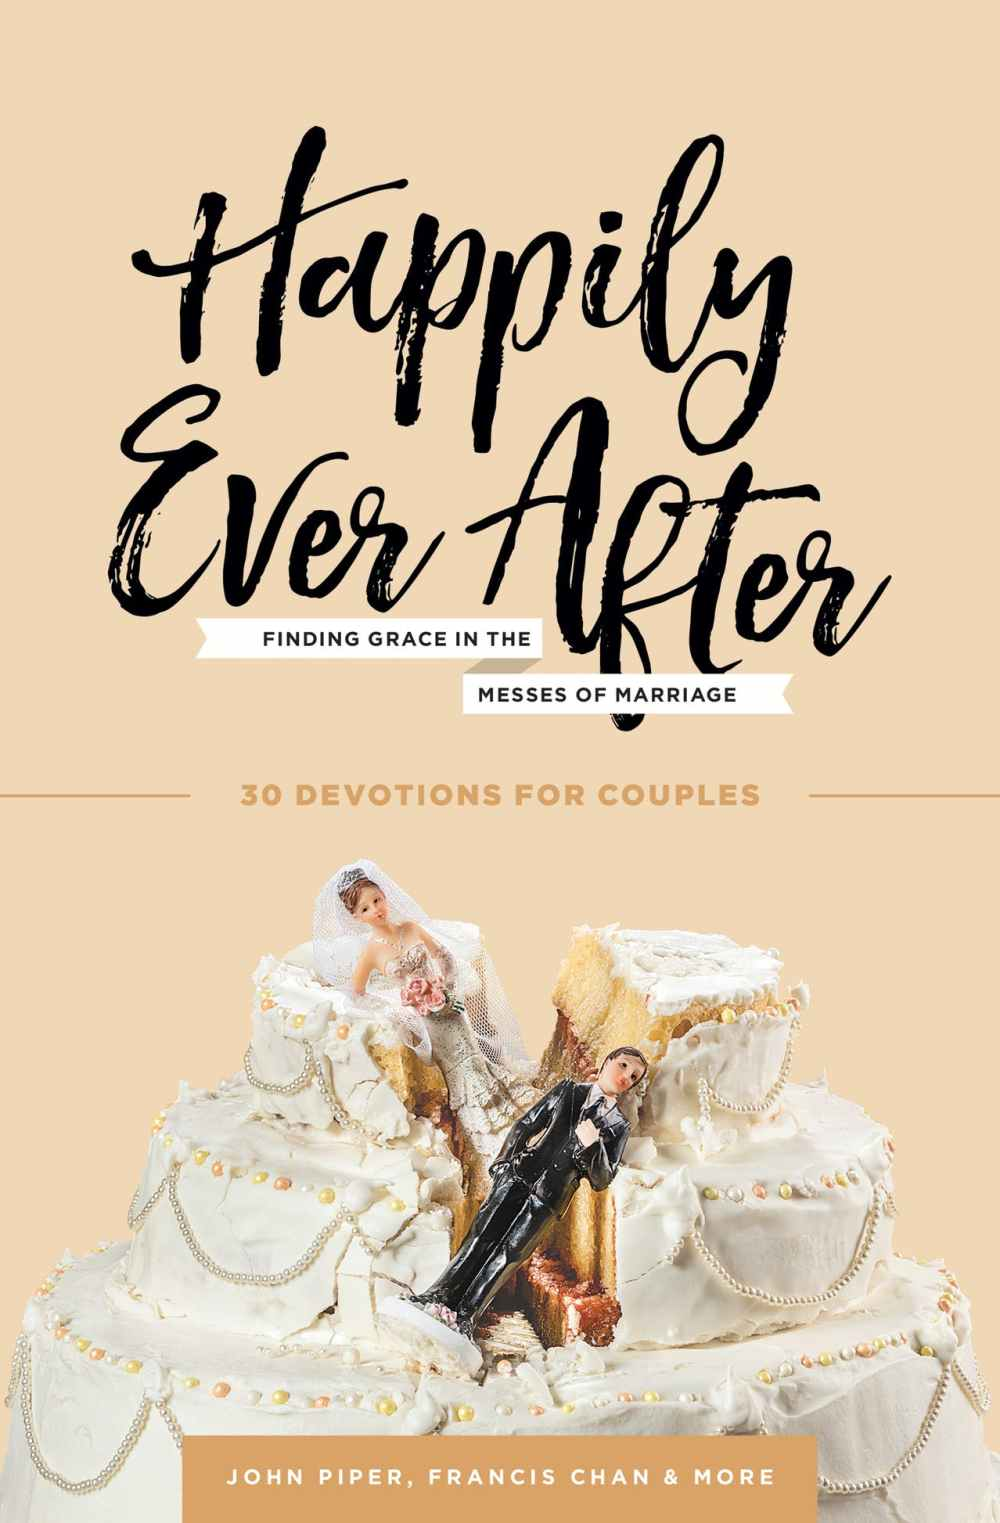 happily-ever-after-afk91oo0.jpg